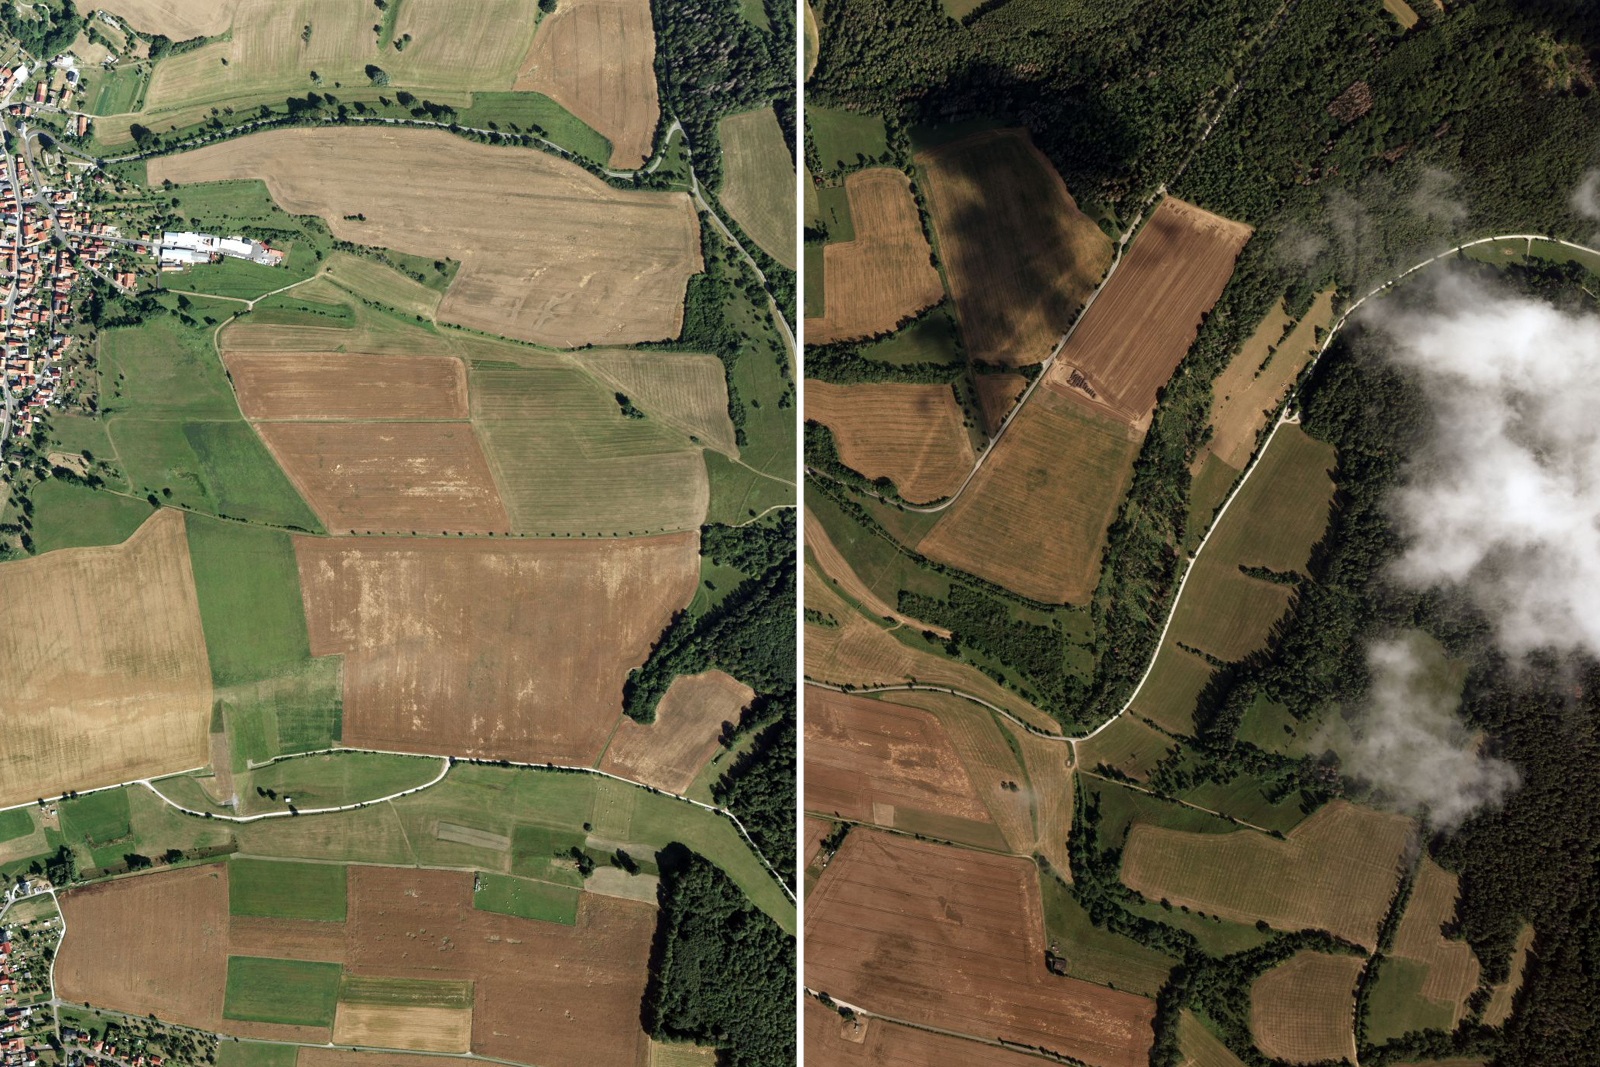 On the left: The ideal aerial photograph - shadow-free with excellent sun position. On the right: This is not how it should be looking. Such aerial images fail the quality check.